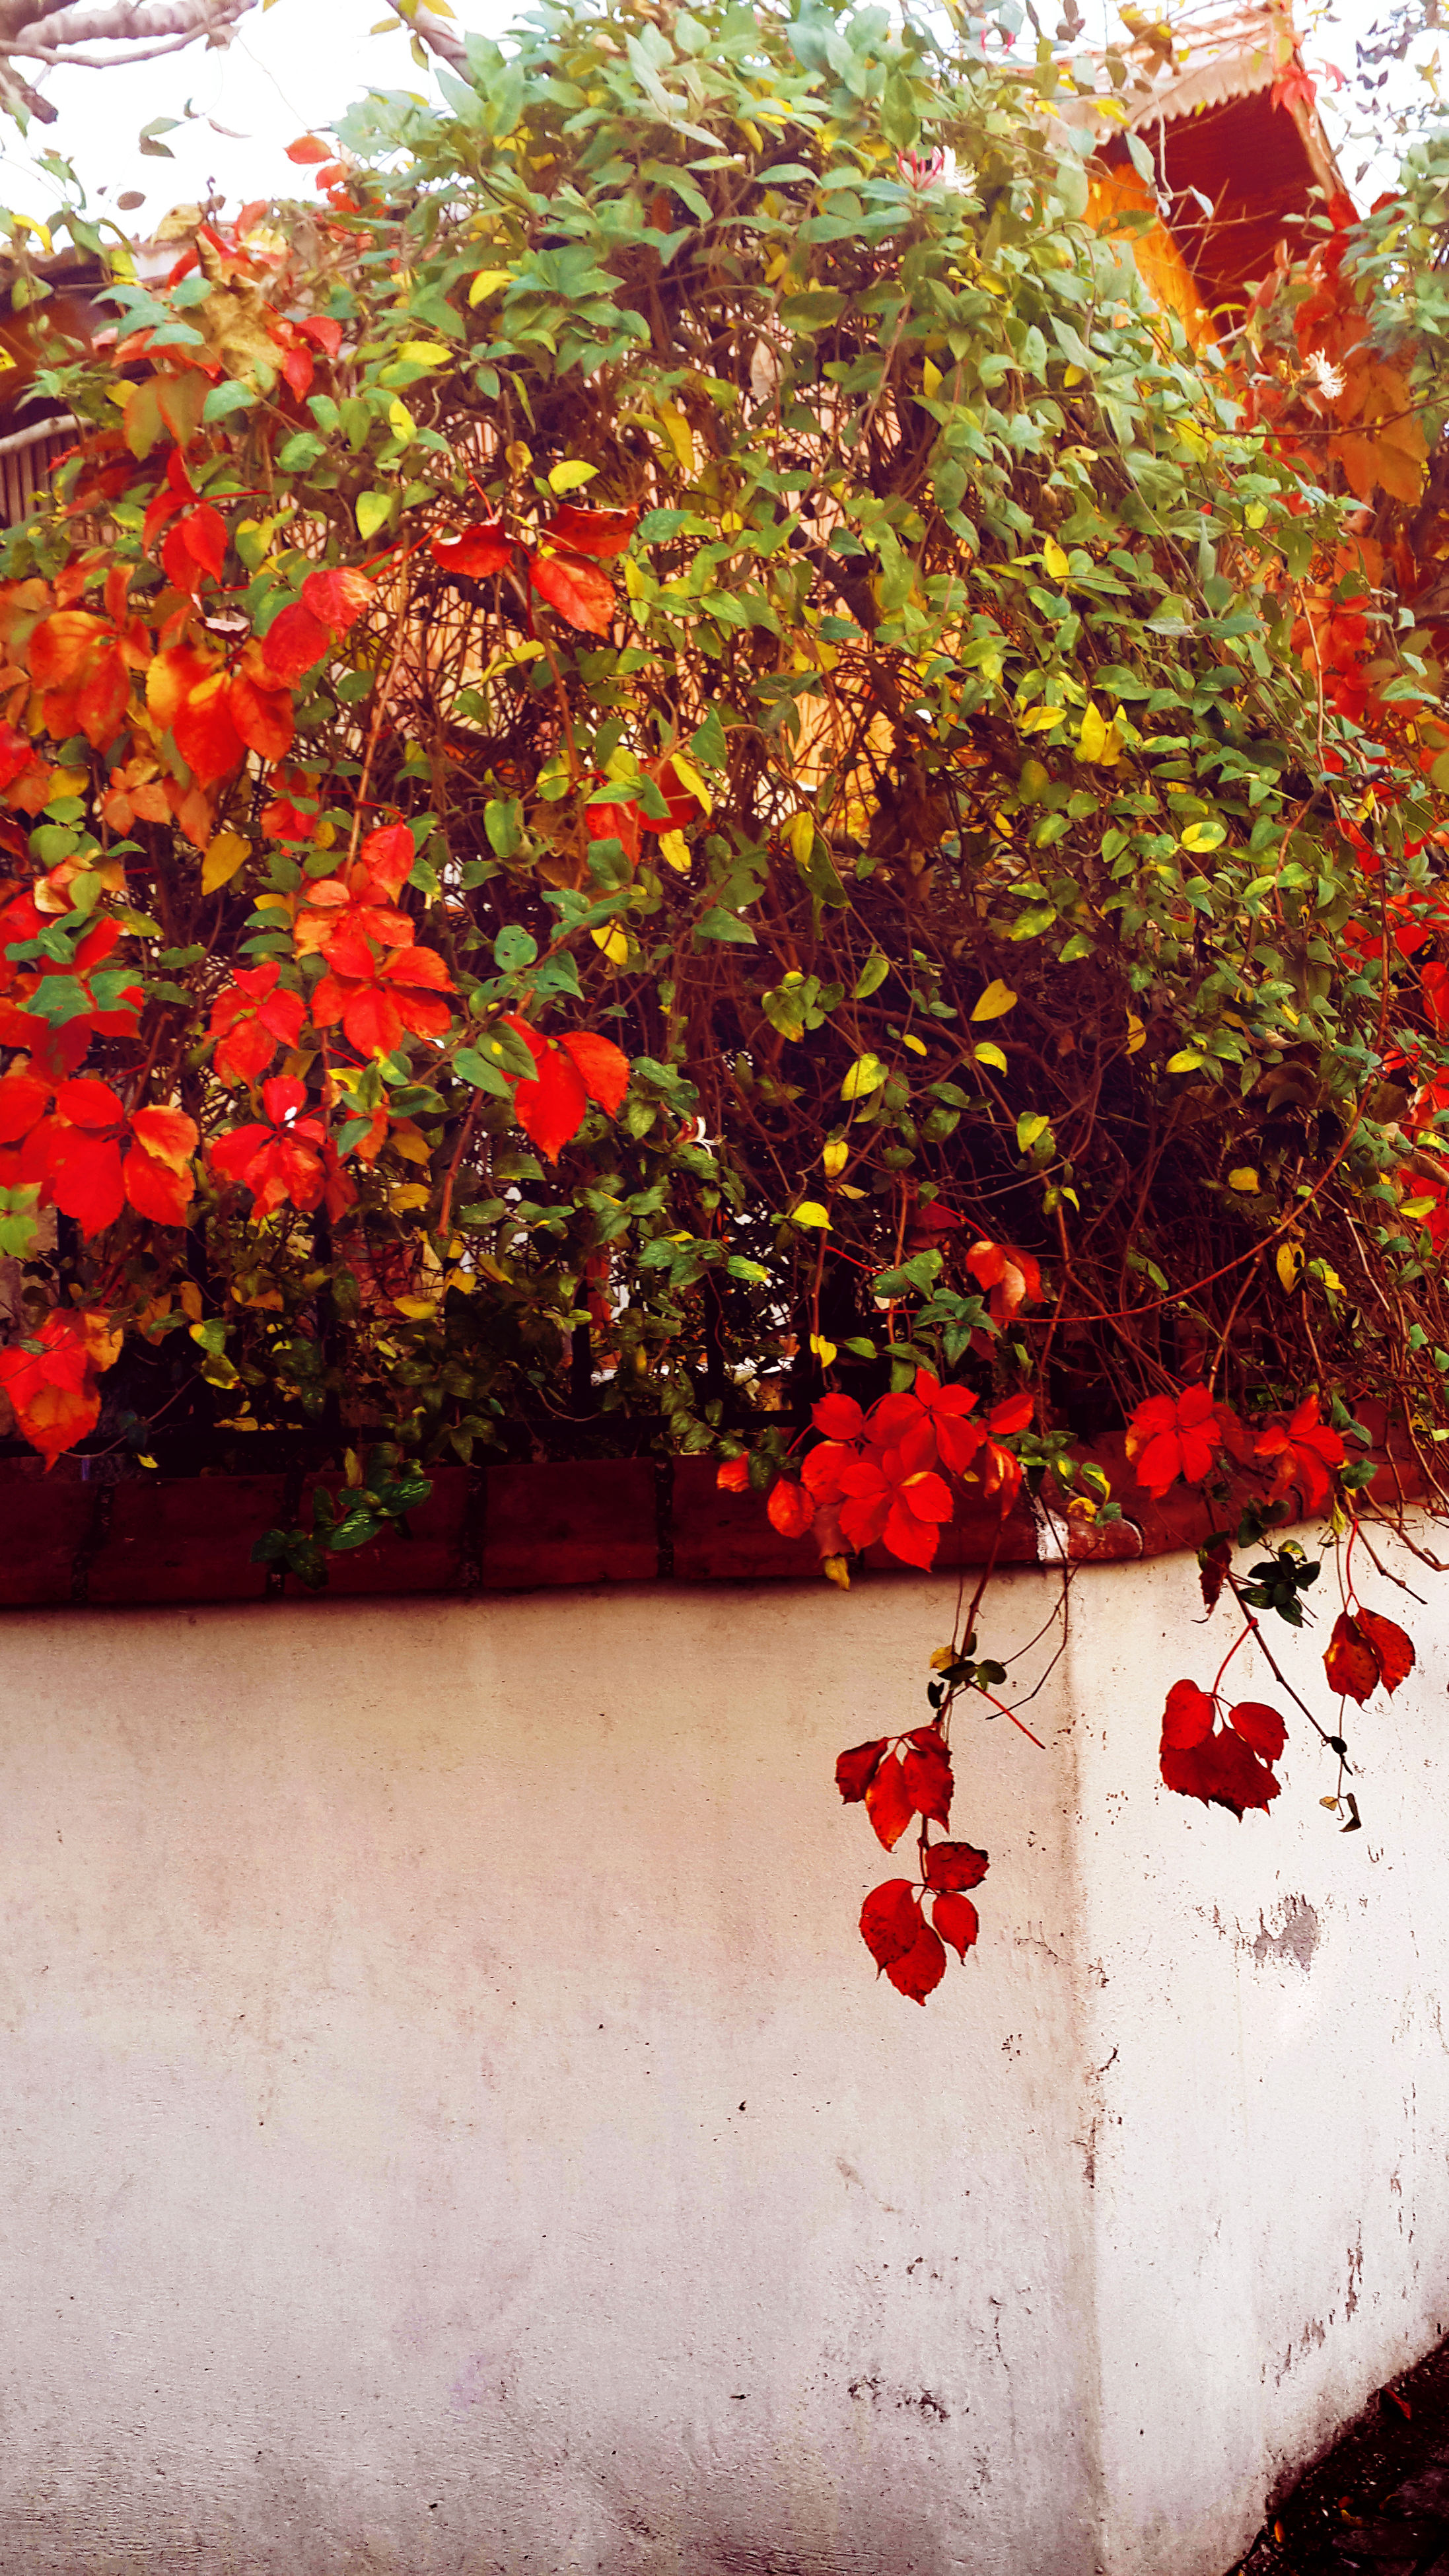 red, no people, growth, leaf, nature, day, plant, beauty in nature, outdoors, close-up, architecture, tree, freshness